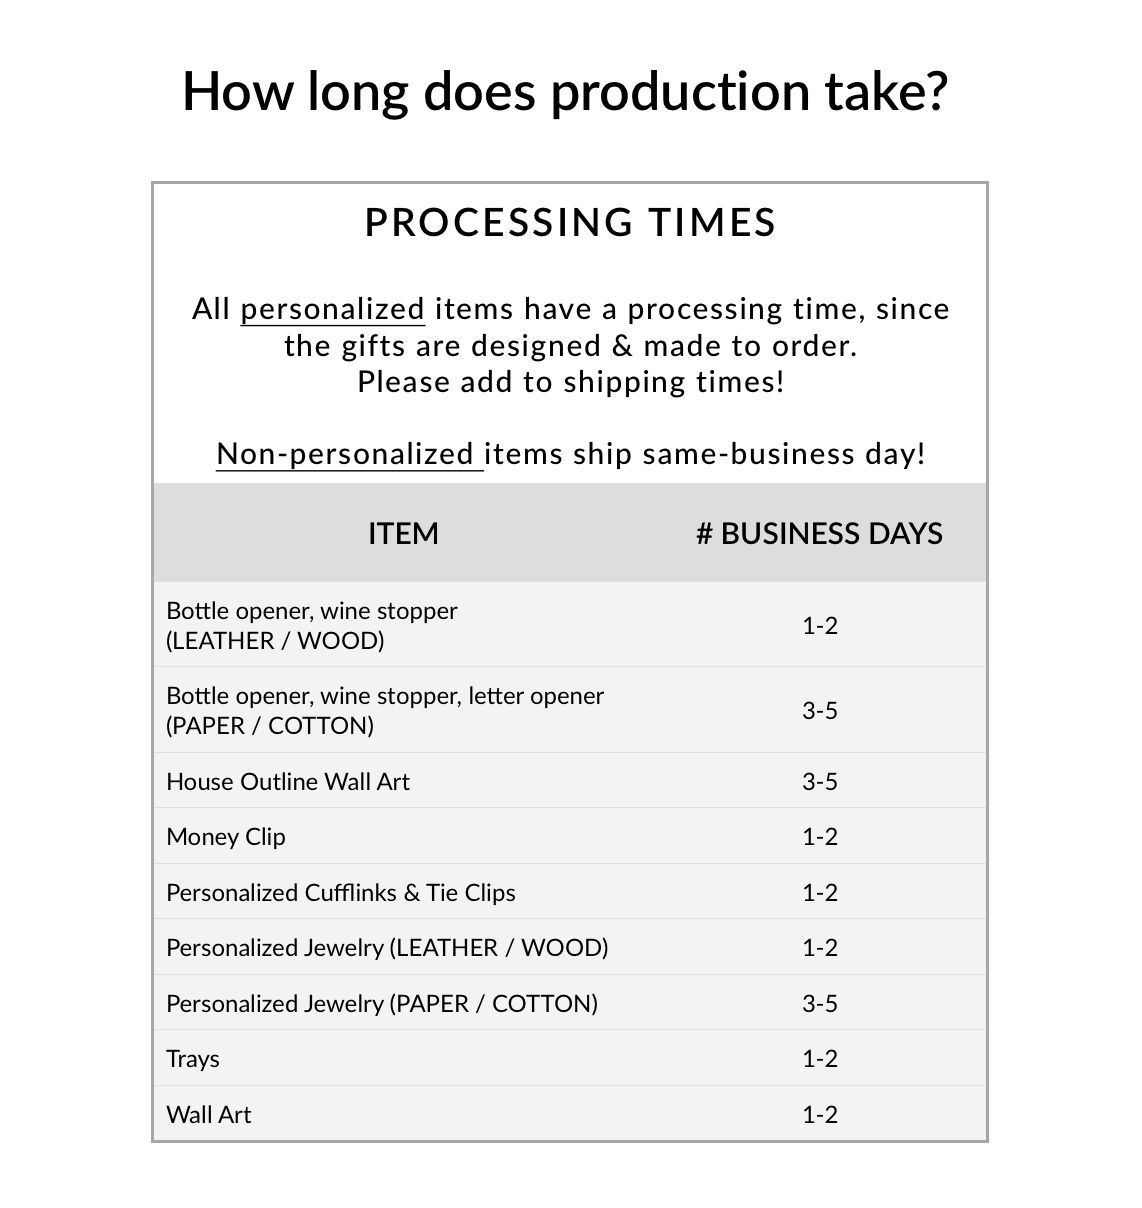 production times